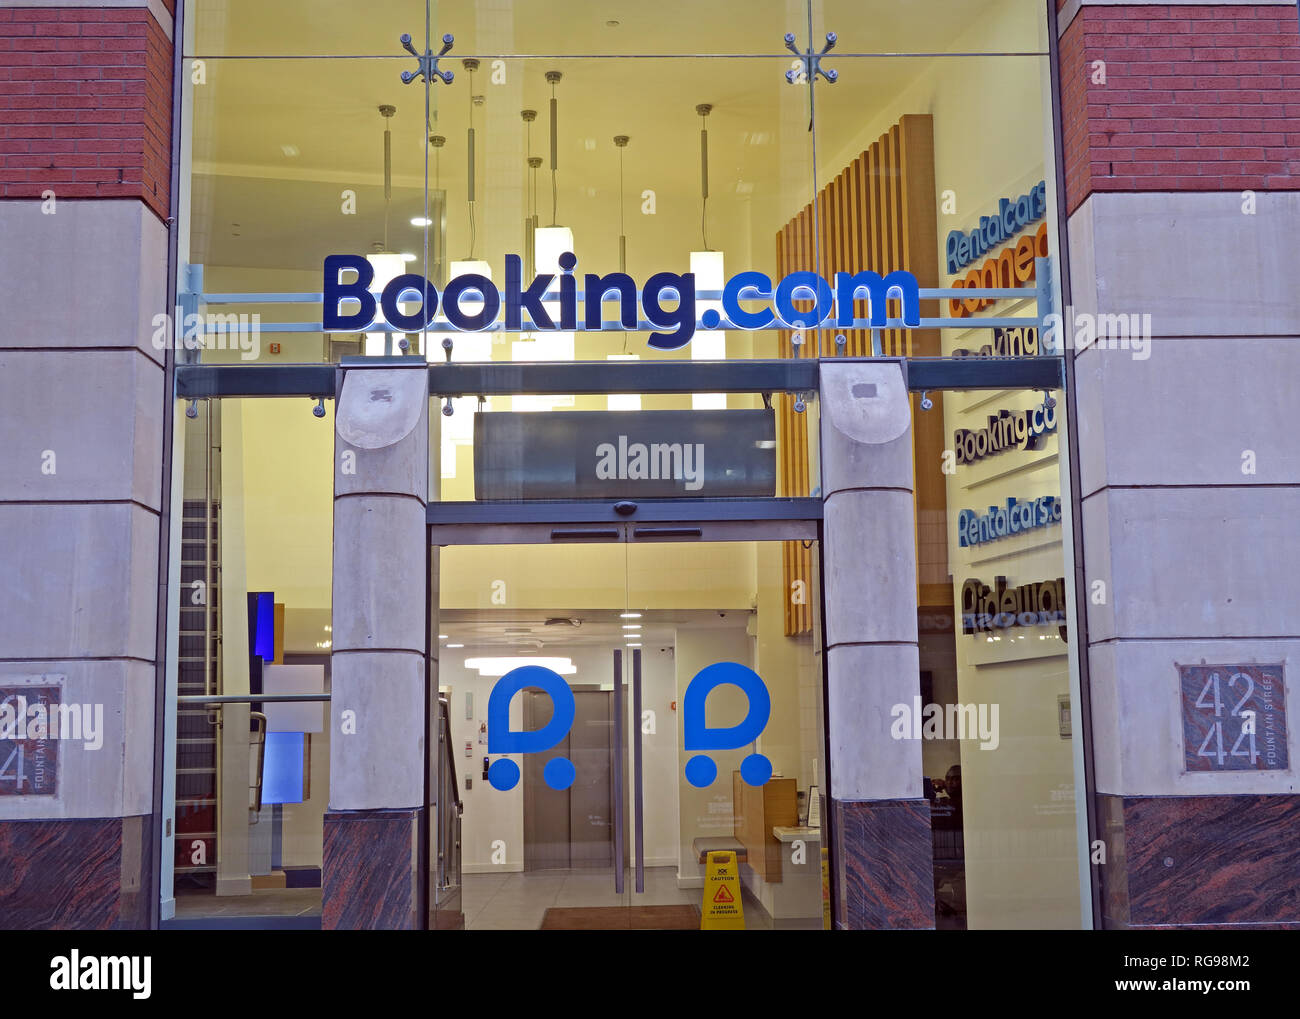 Manchester Offices of Booking.com (online hotels and car hire), City Centre, Lancashire, North West England, - Stock Image